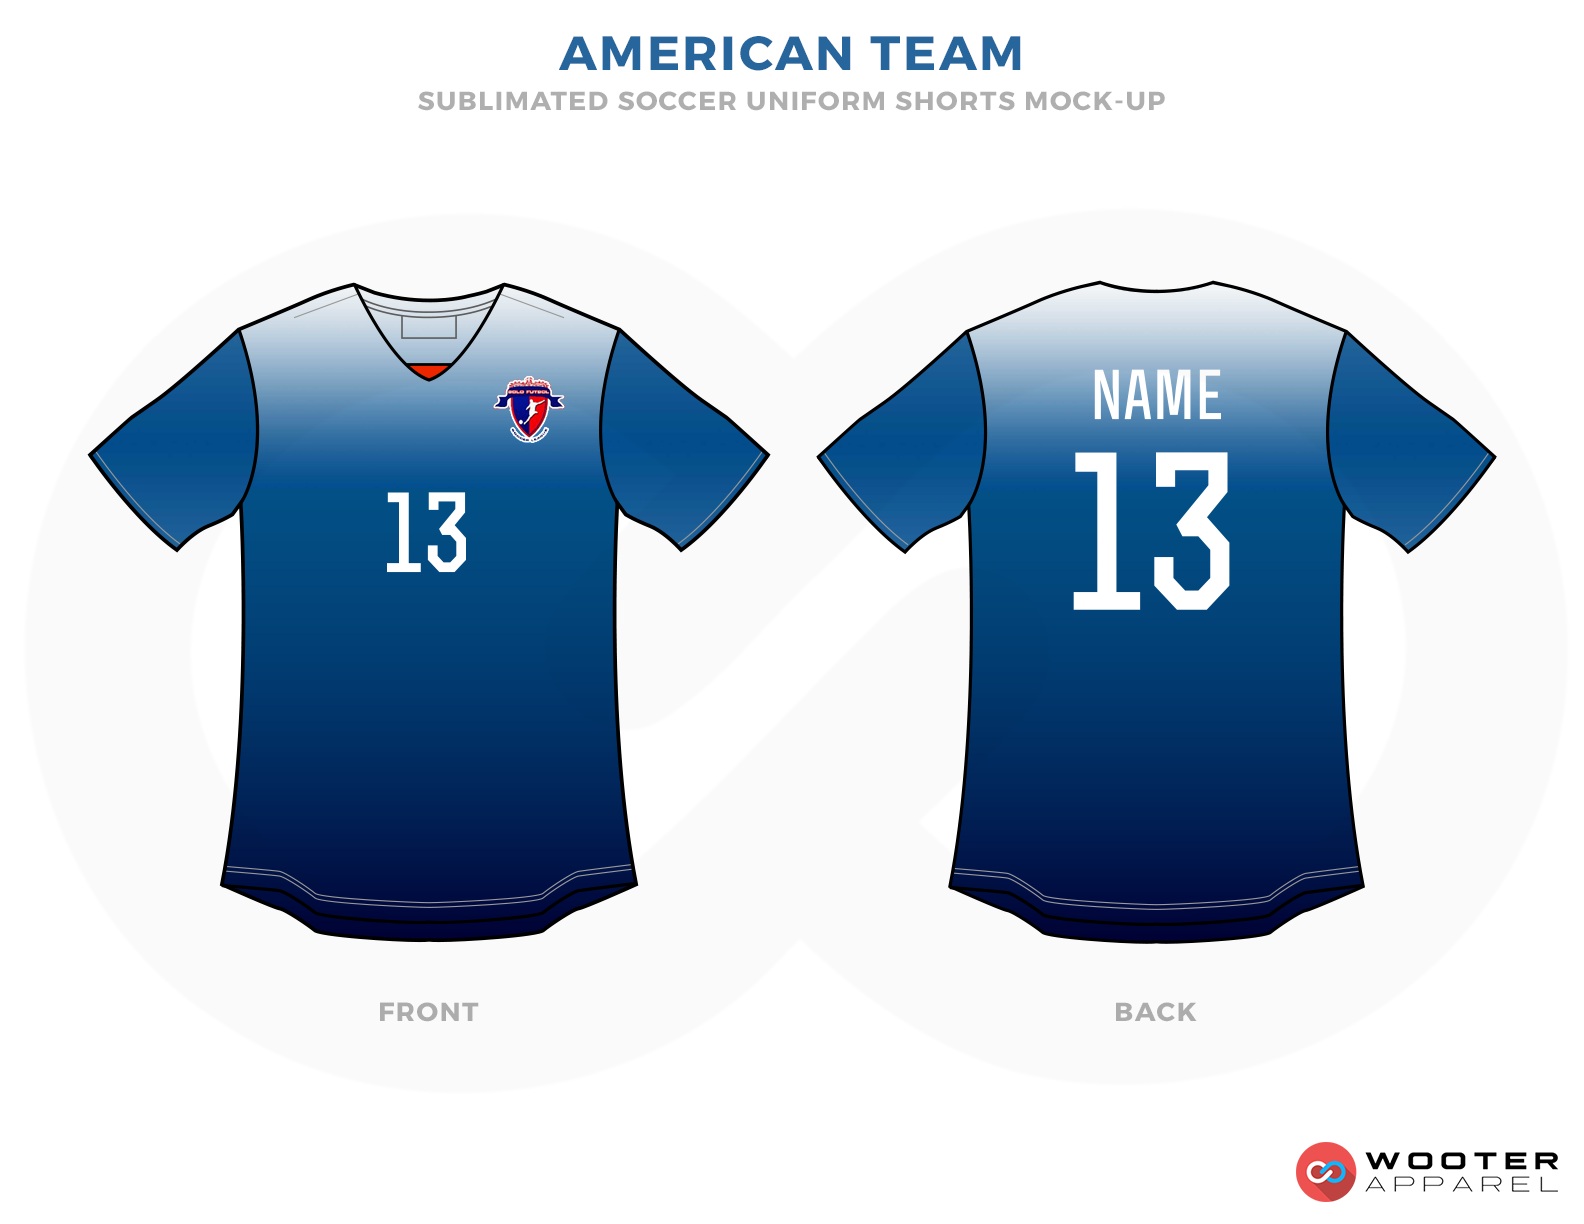 American Team Blue and White Soccer Uniform, Jersey and Shorts